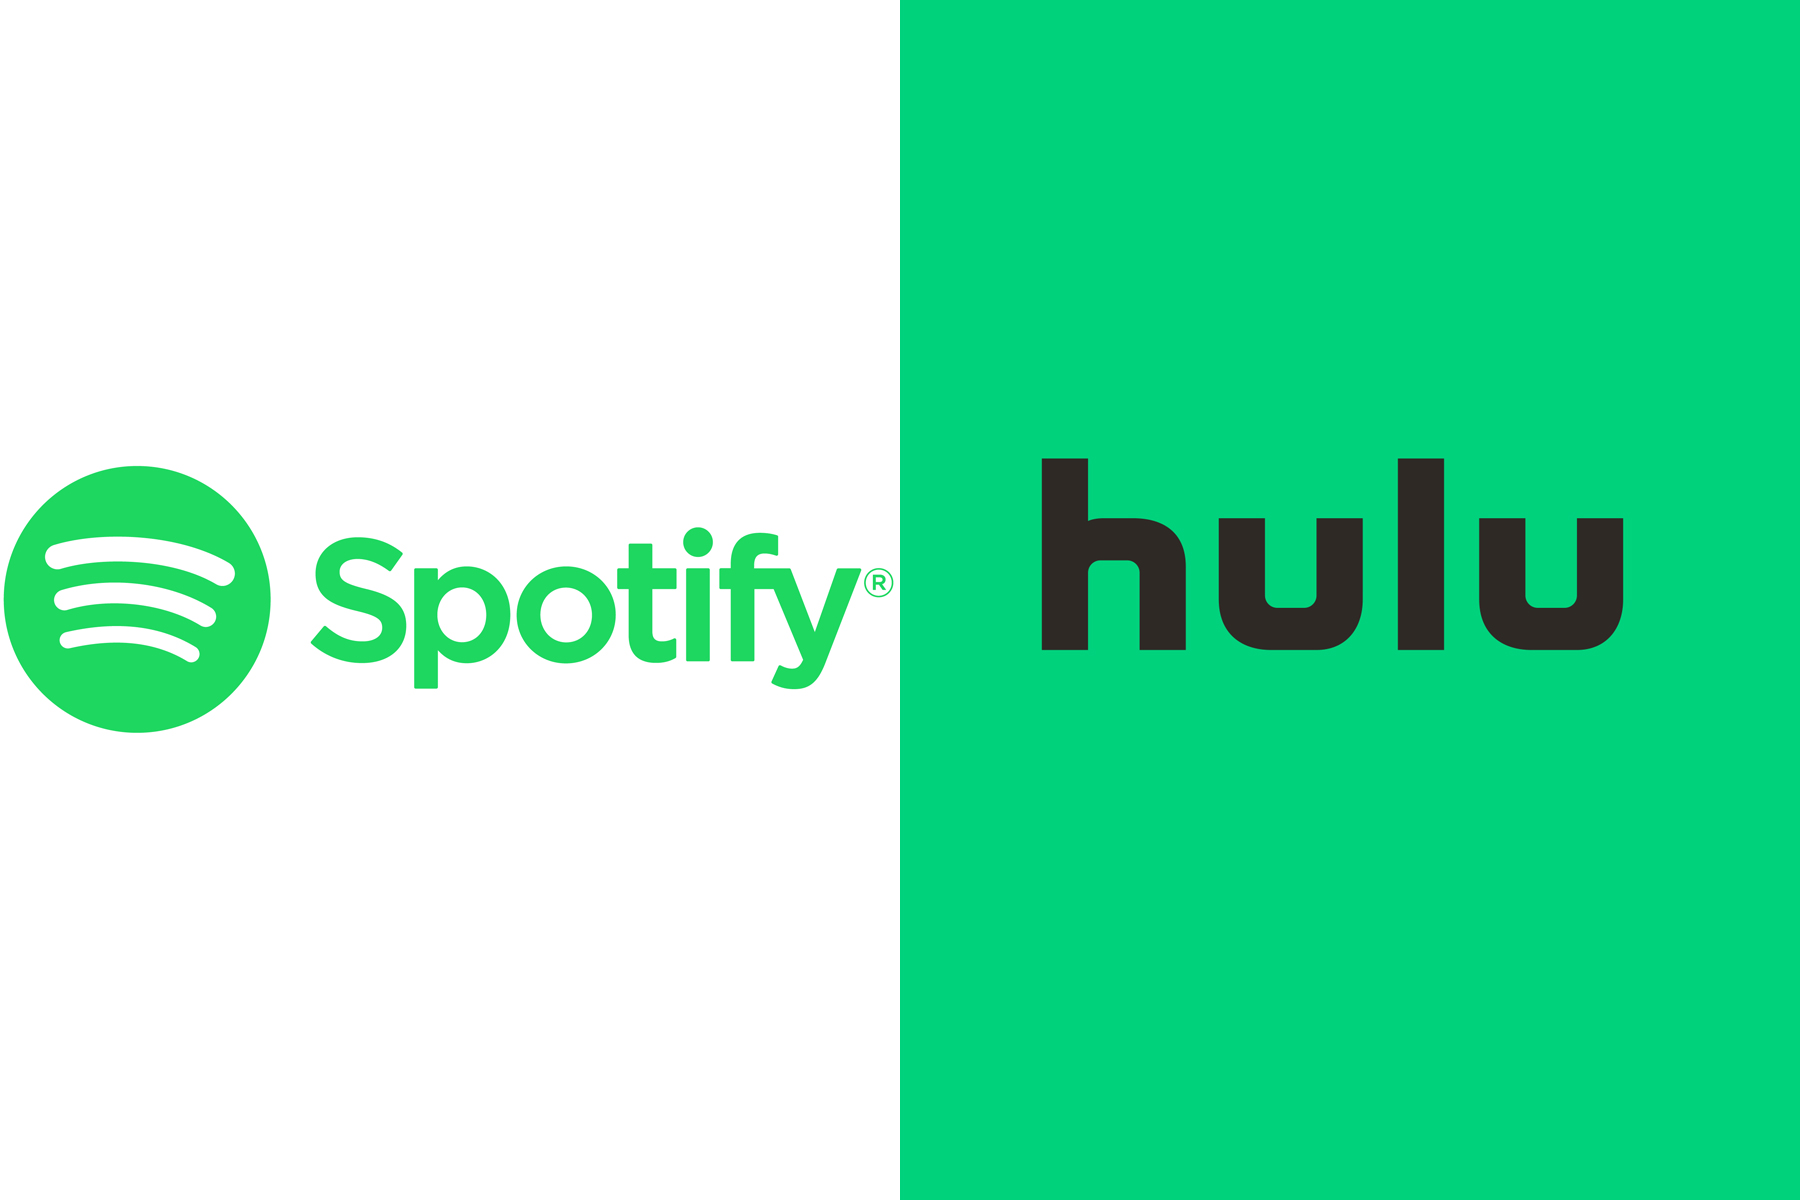 Image result for spotify and hulu